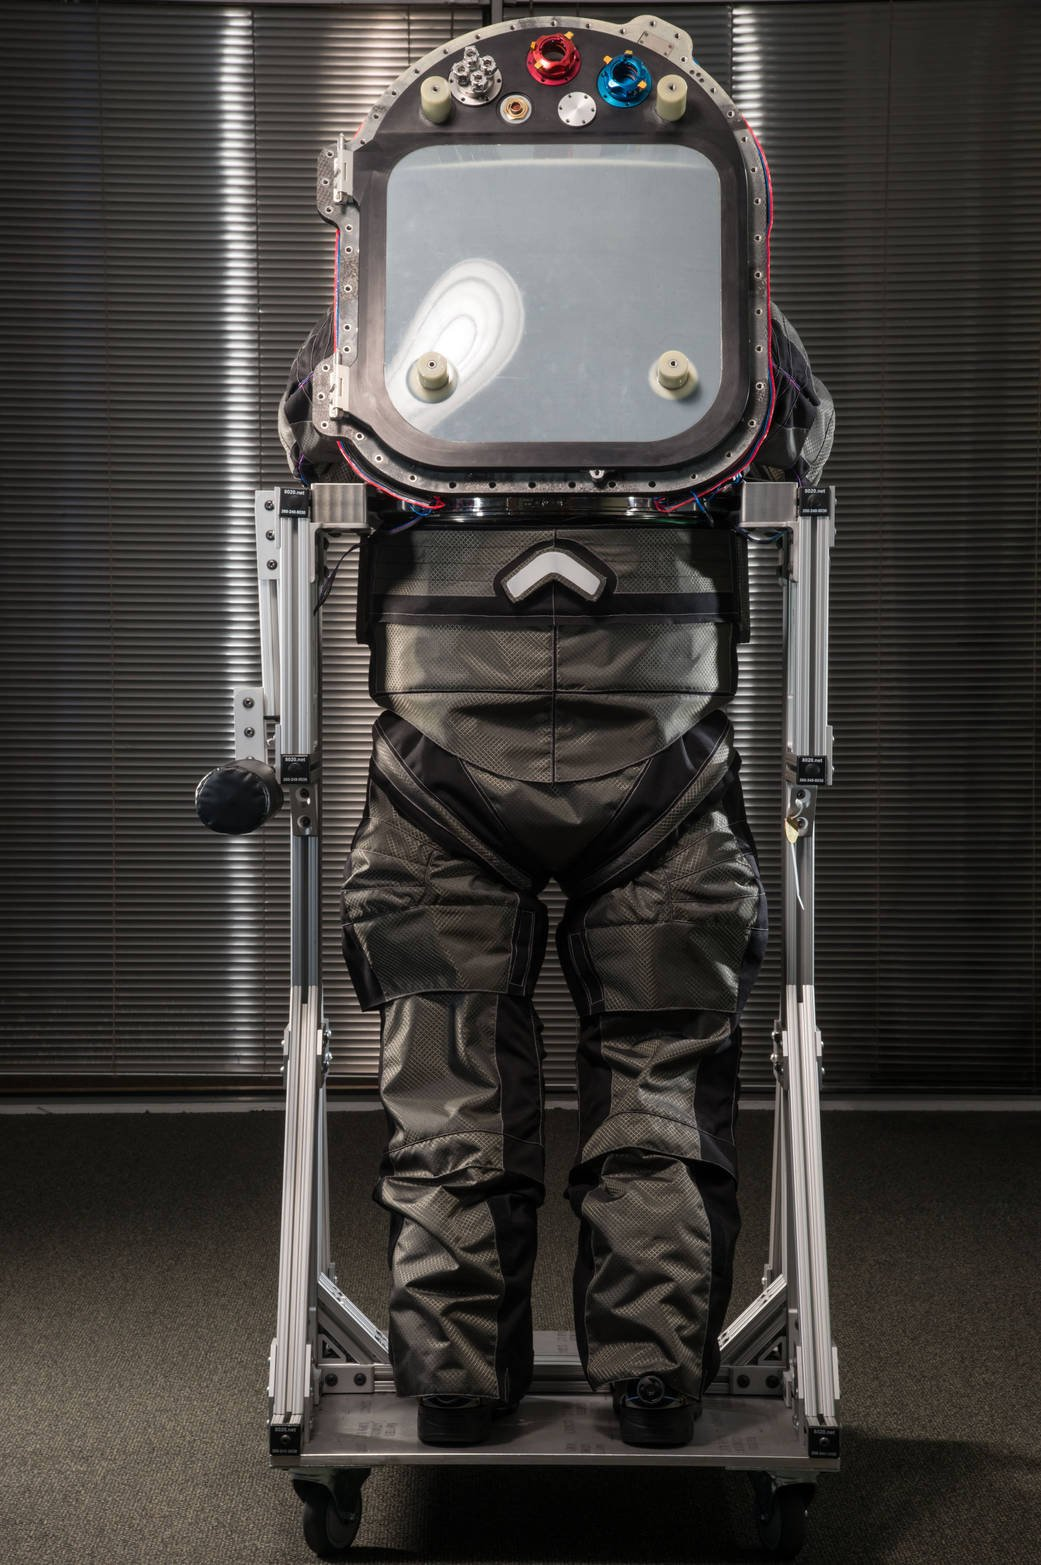 astronaut suit on mars - photo #17